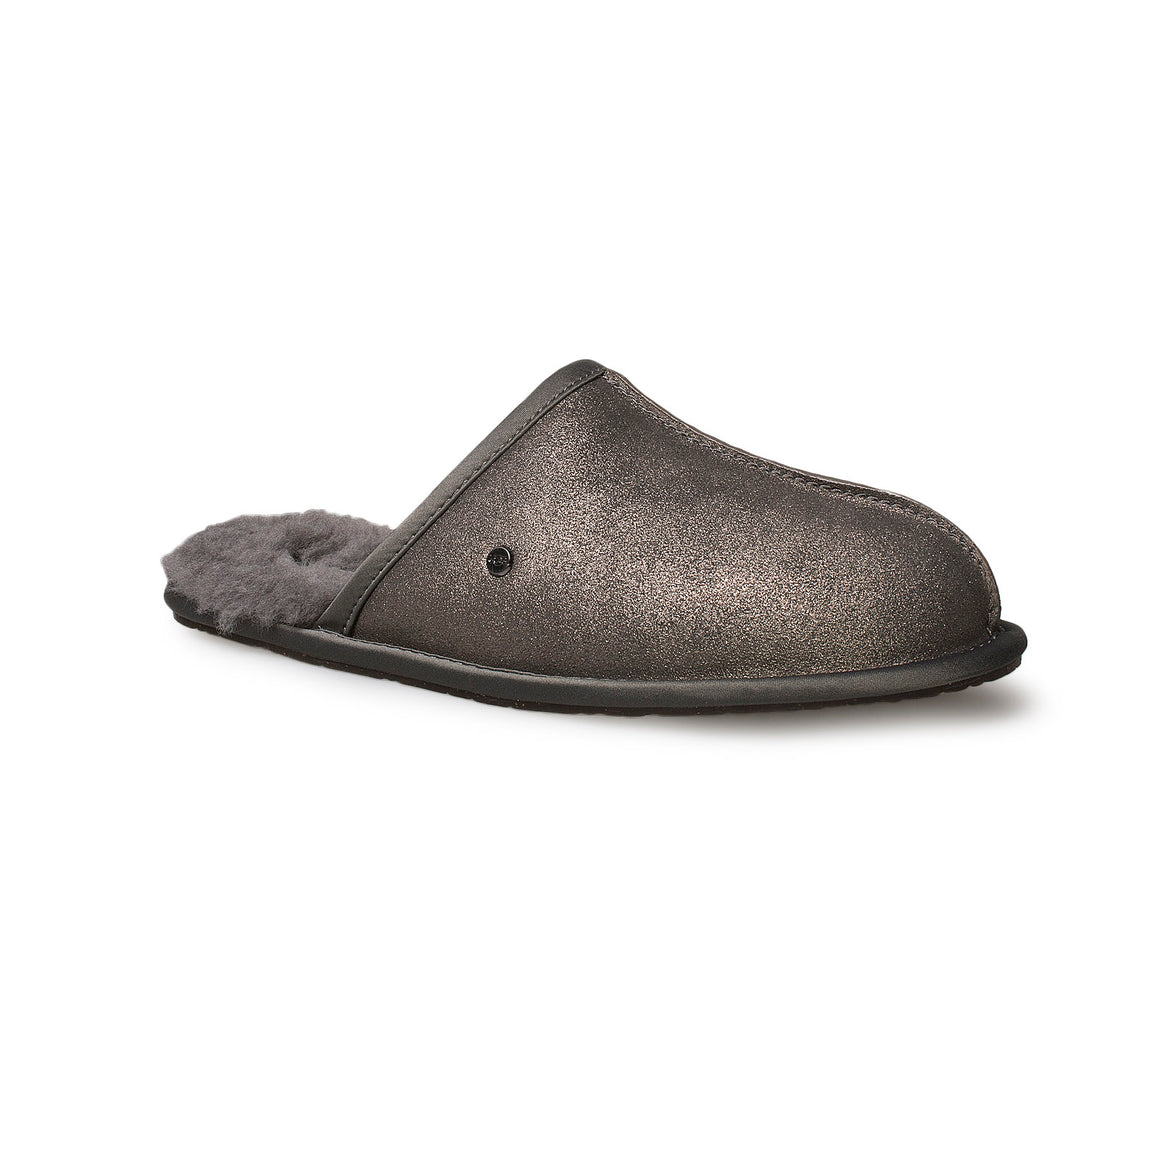 UGG Pearle Sparkle Gunmetal Slippers - Women's